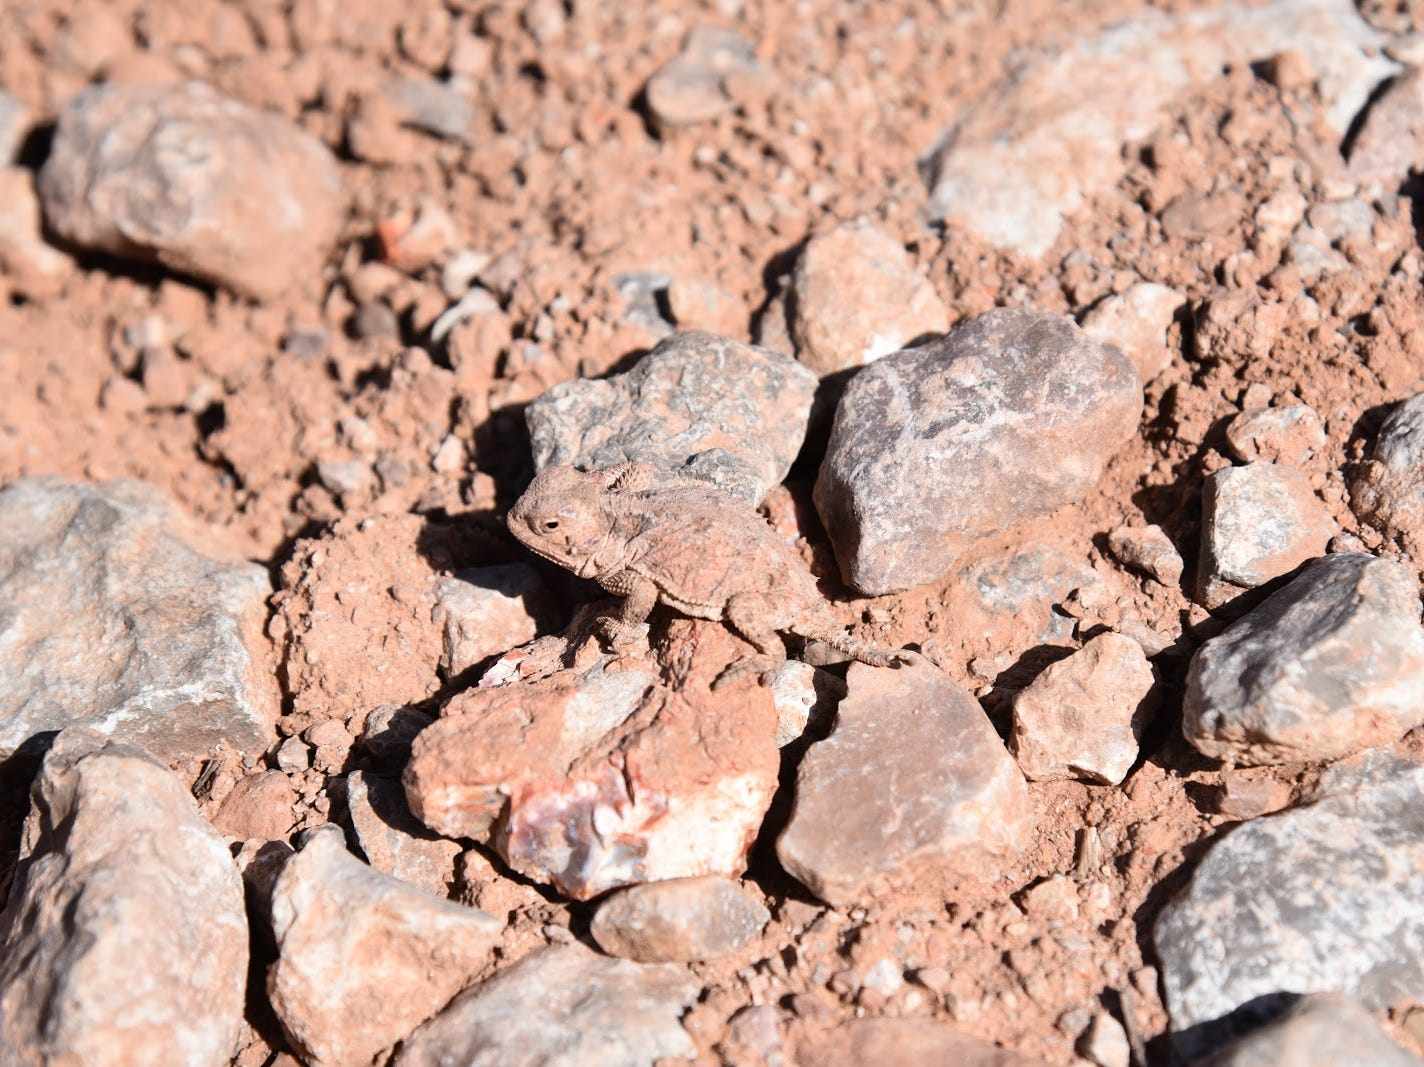 Look closely: A baby horned lizard blends in with the rocks.